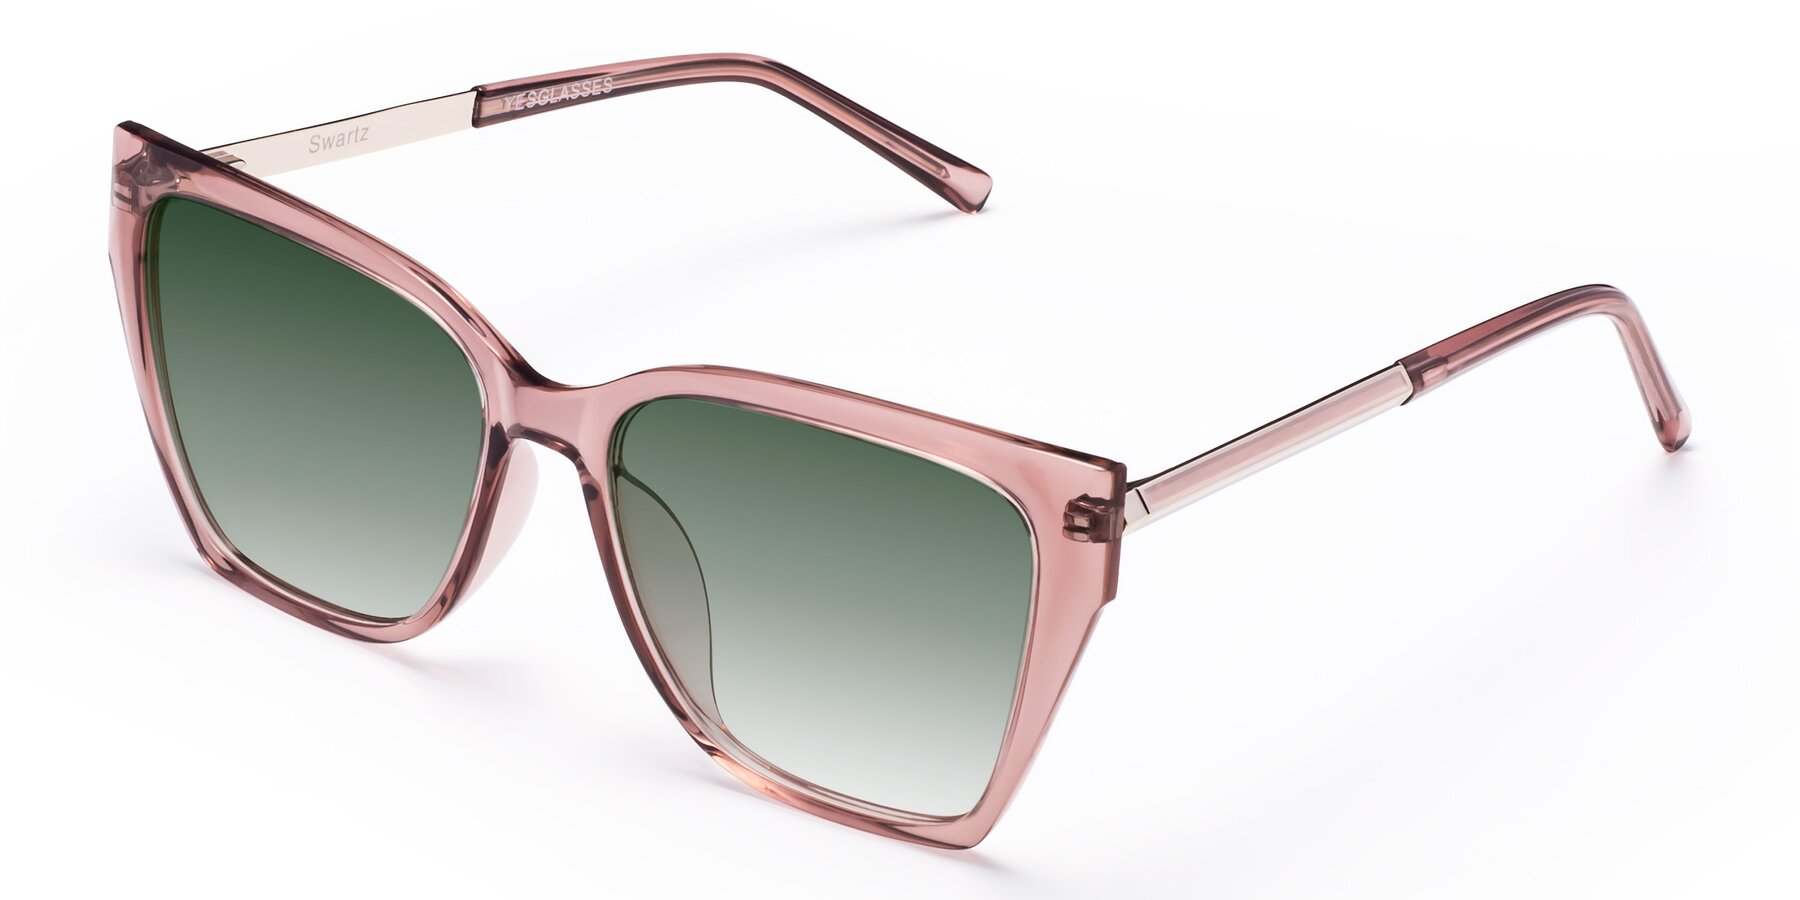 Angle of Swartz in Grape with Green Gradient Lenses